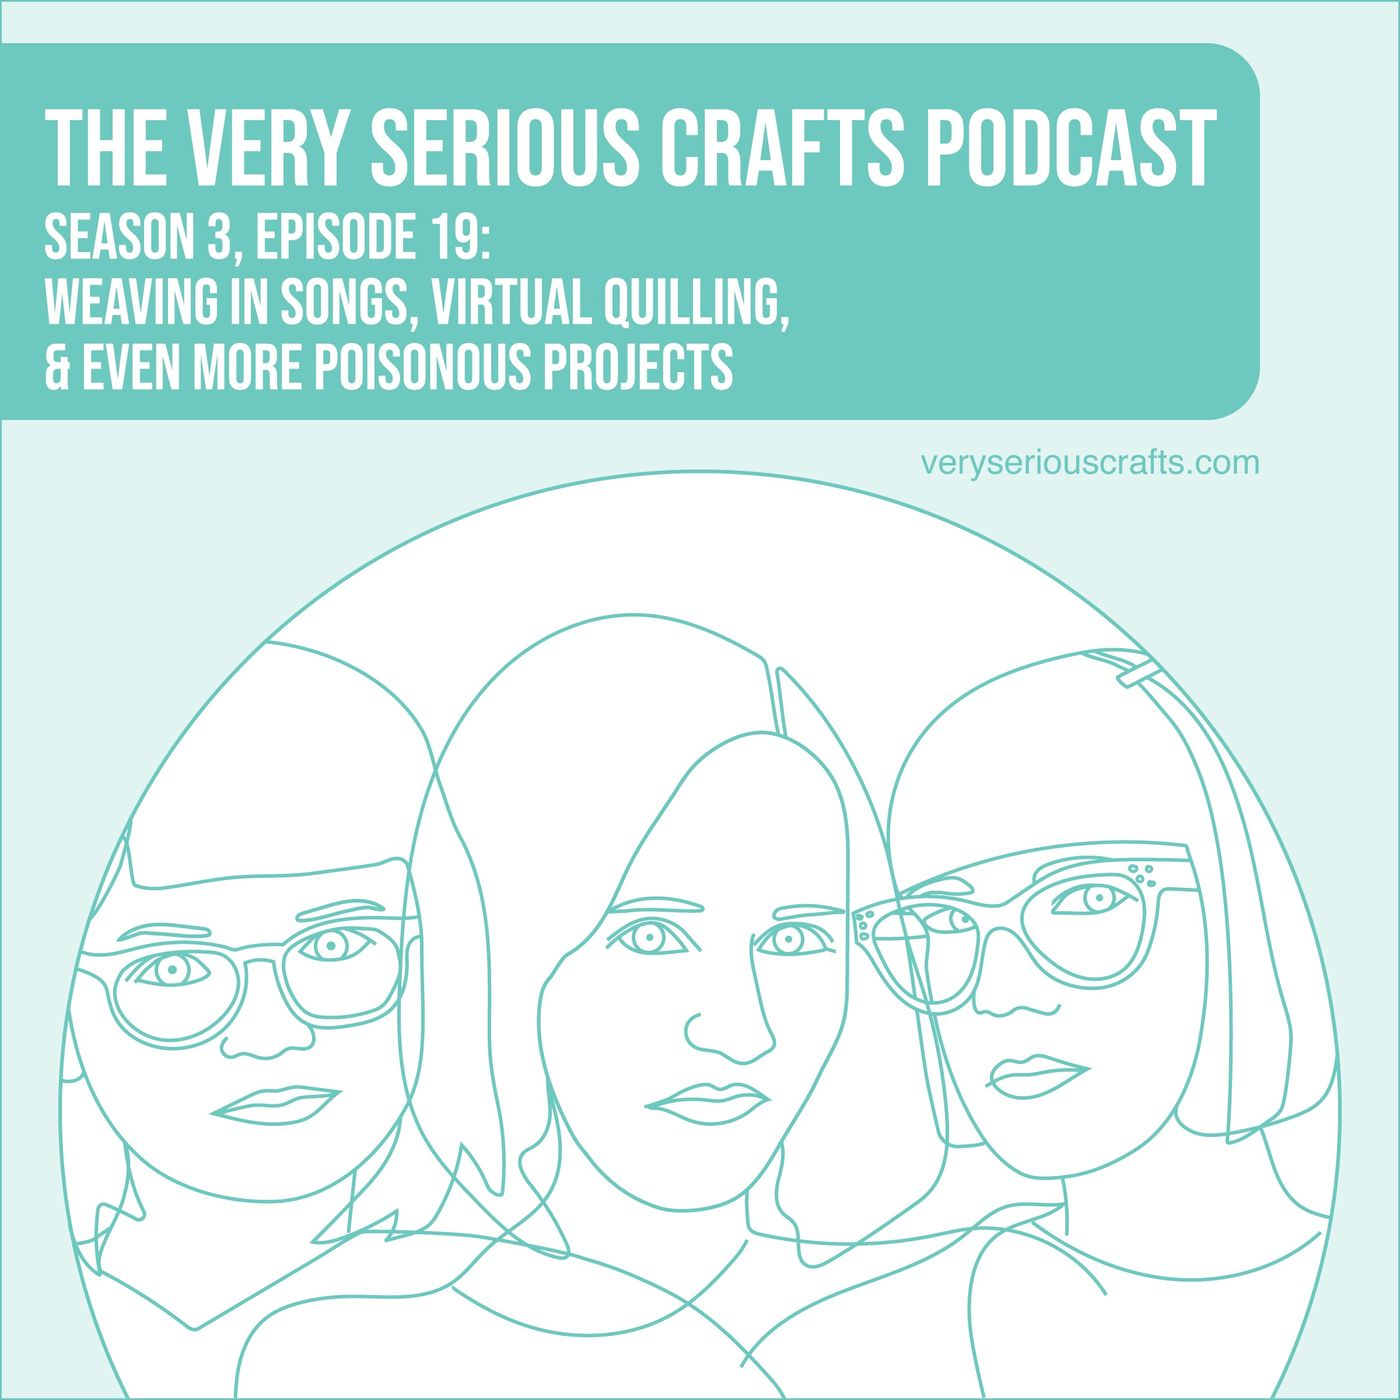 S3E19: Weaving in Songs, Virtual Quilling, and Even More Poisonous Projects